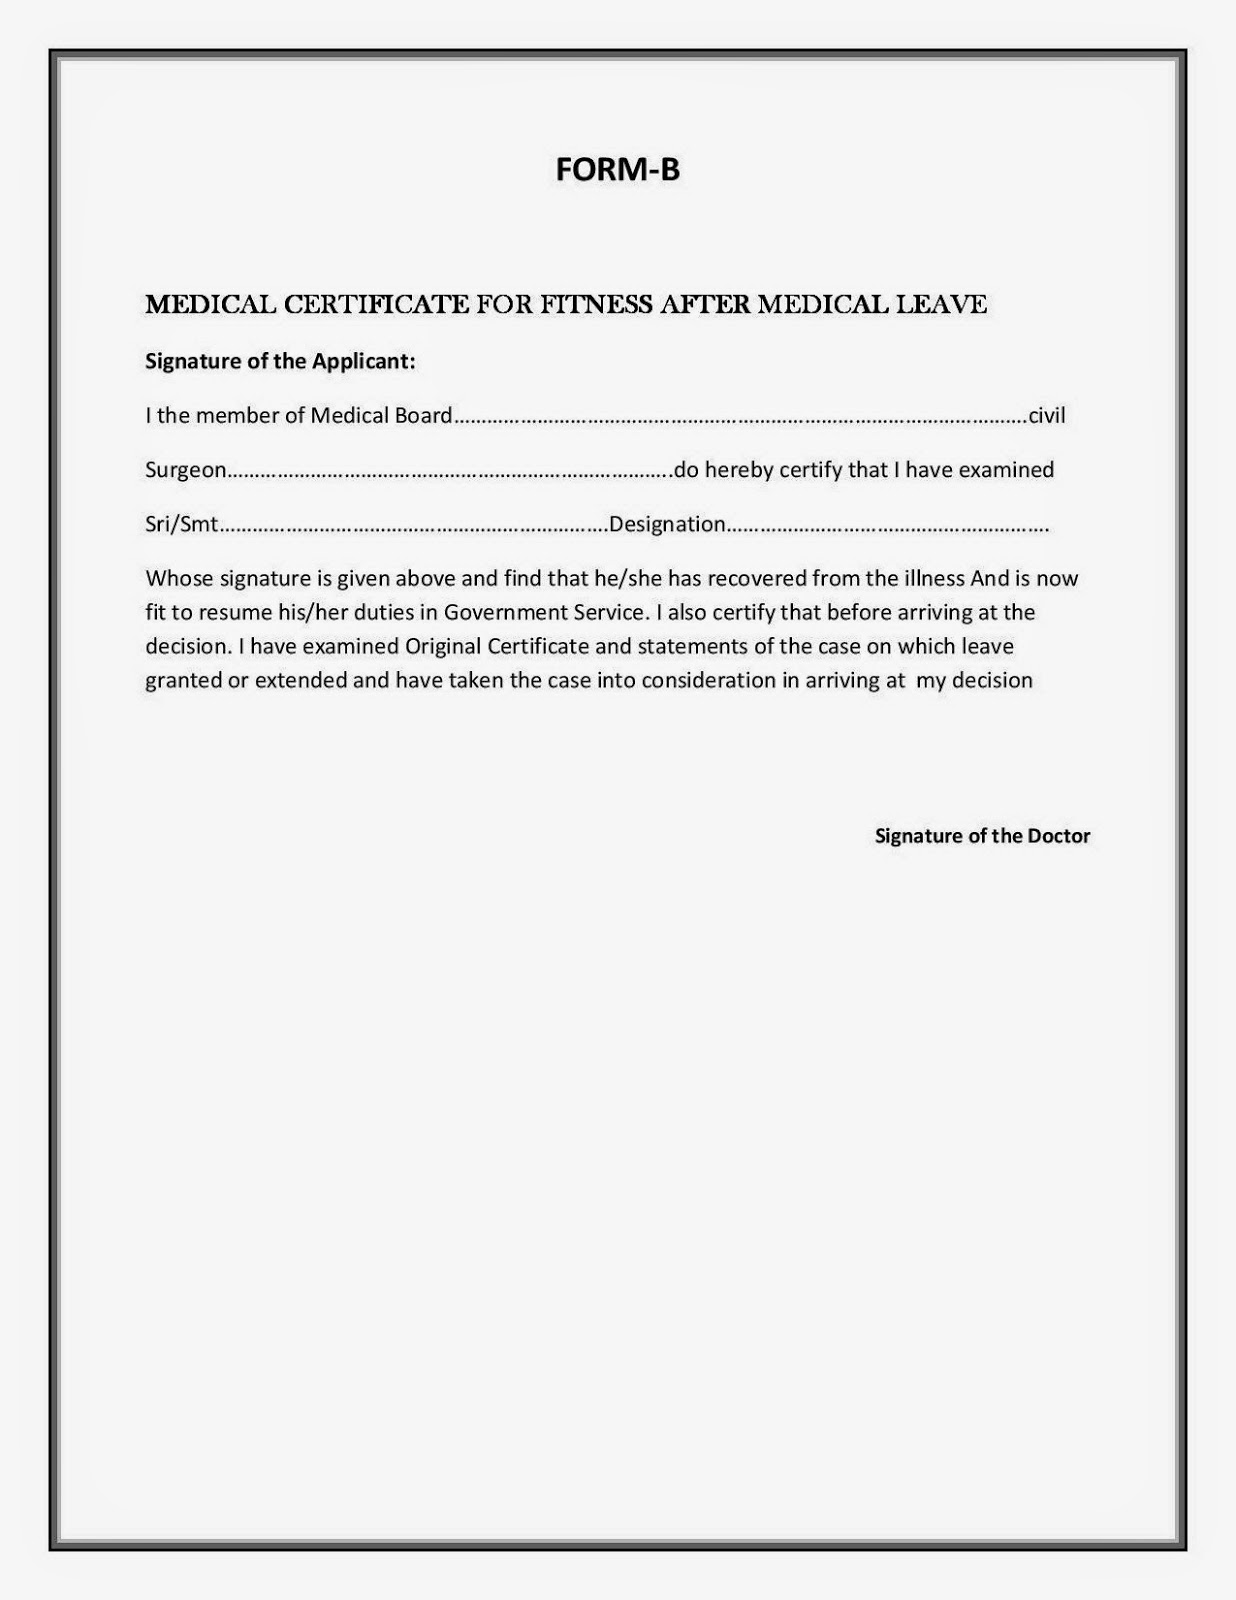 form a and form b for medical leave